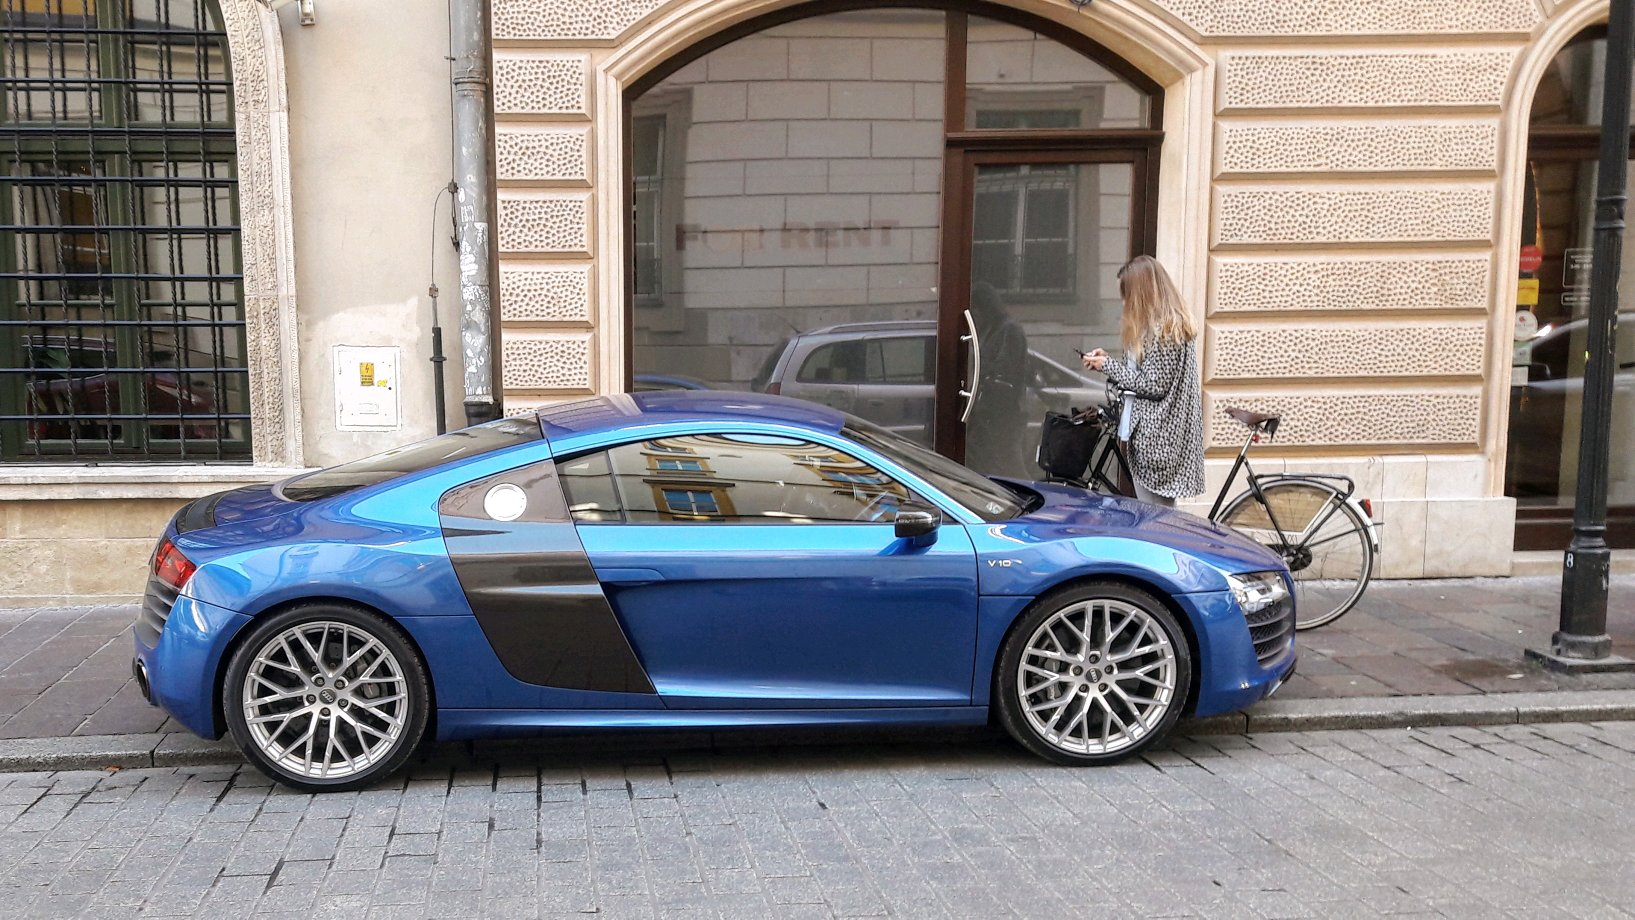 Audi R8 V10 And A Bmw I8 In The Background